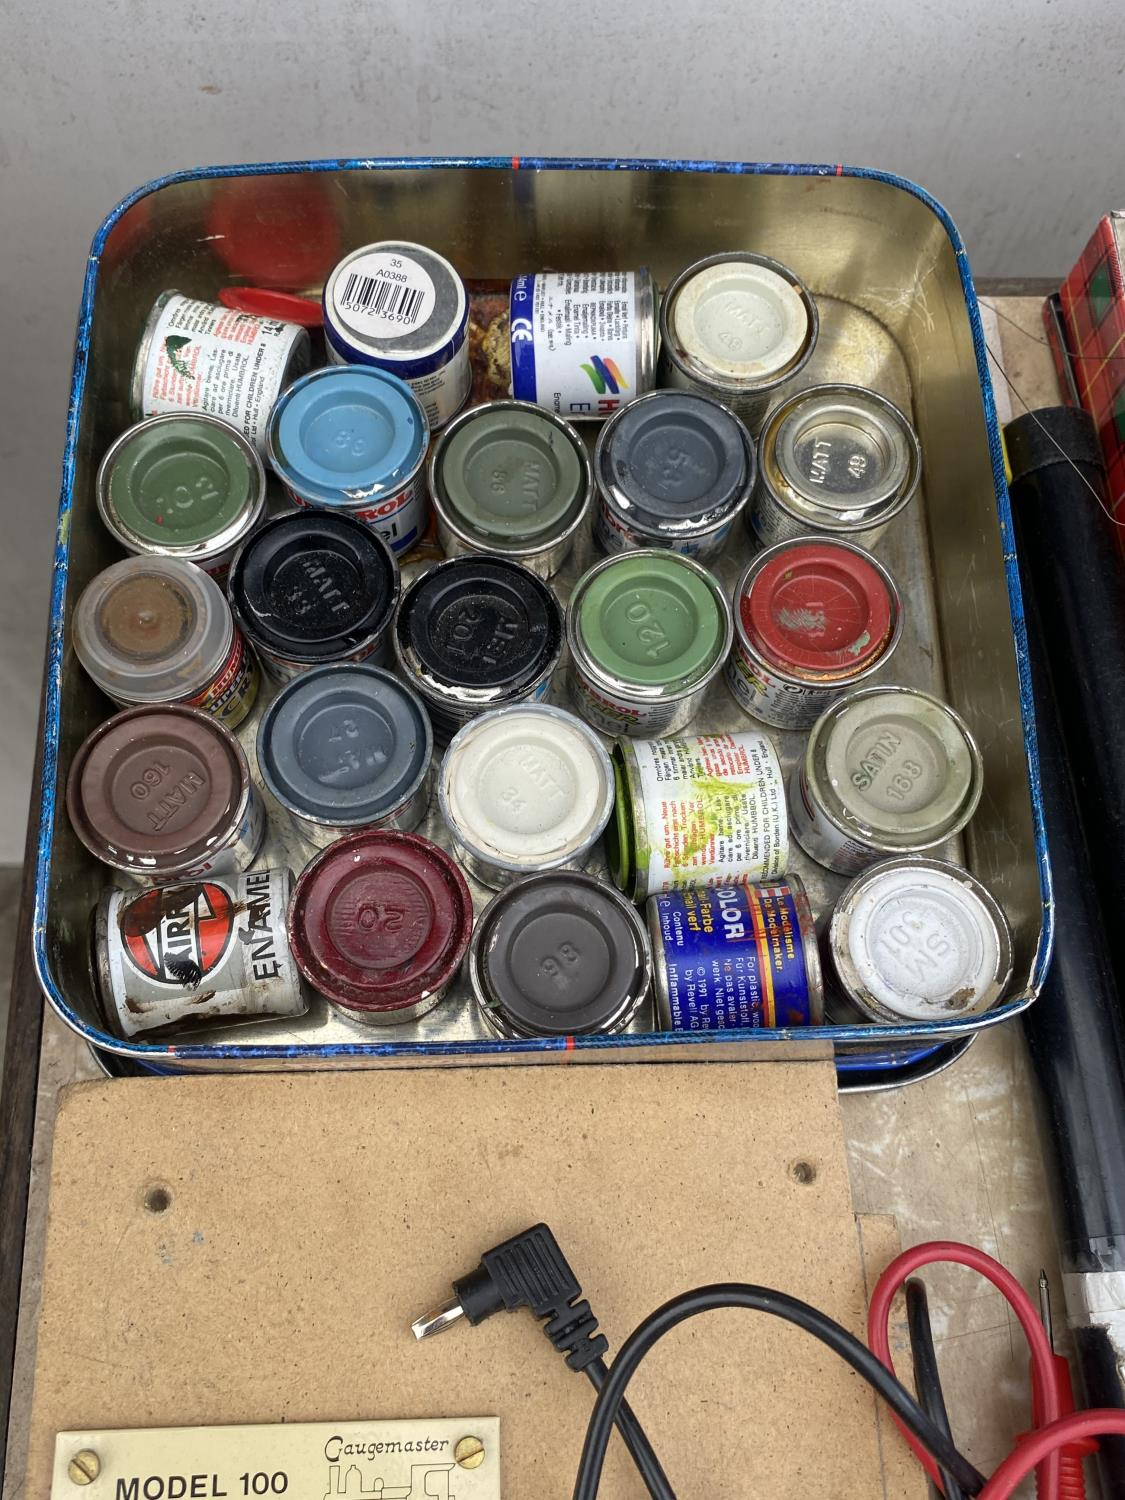 AN ASSORTMENT OF ARTS AND CRAFTS EQUIPMENT TO INCLUDE SOLDERING IRONS, A CLAMP AND MODEL PAINT AND - Image 3 of 6